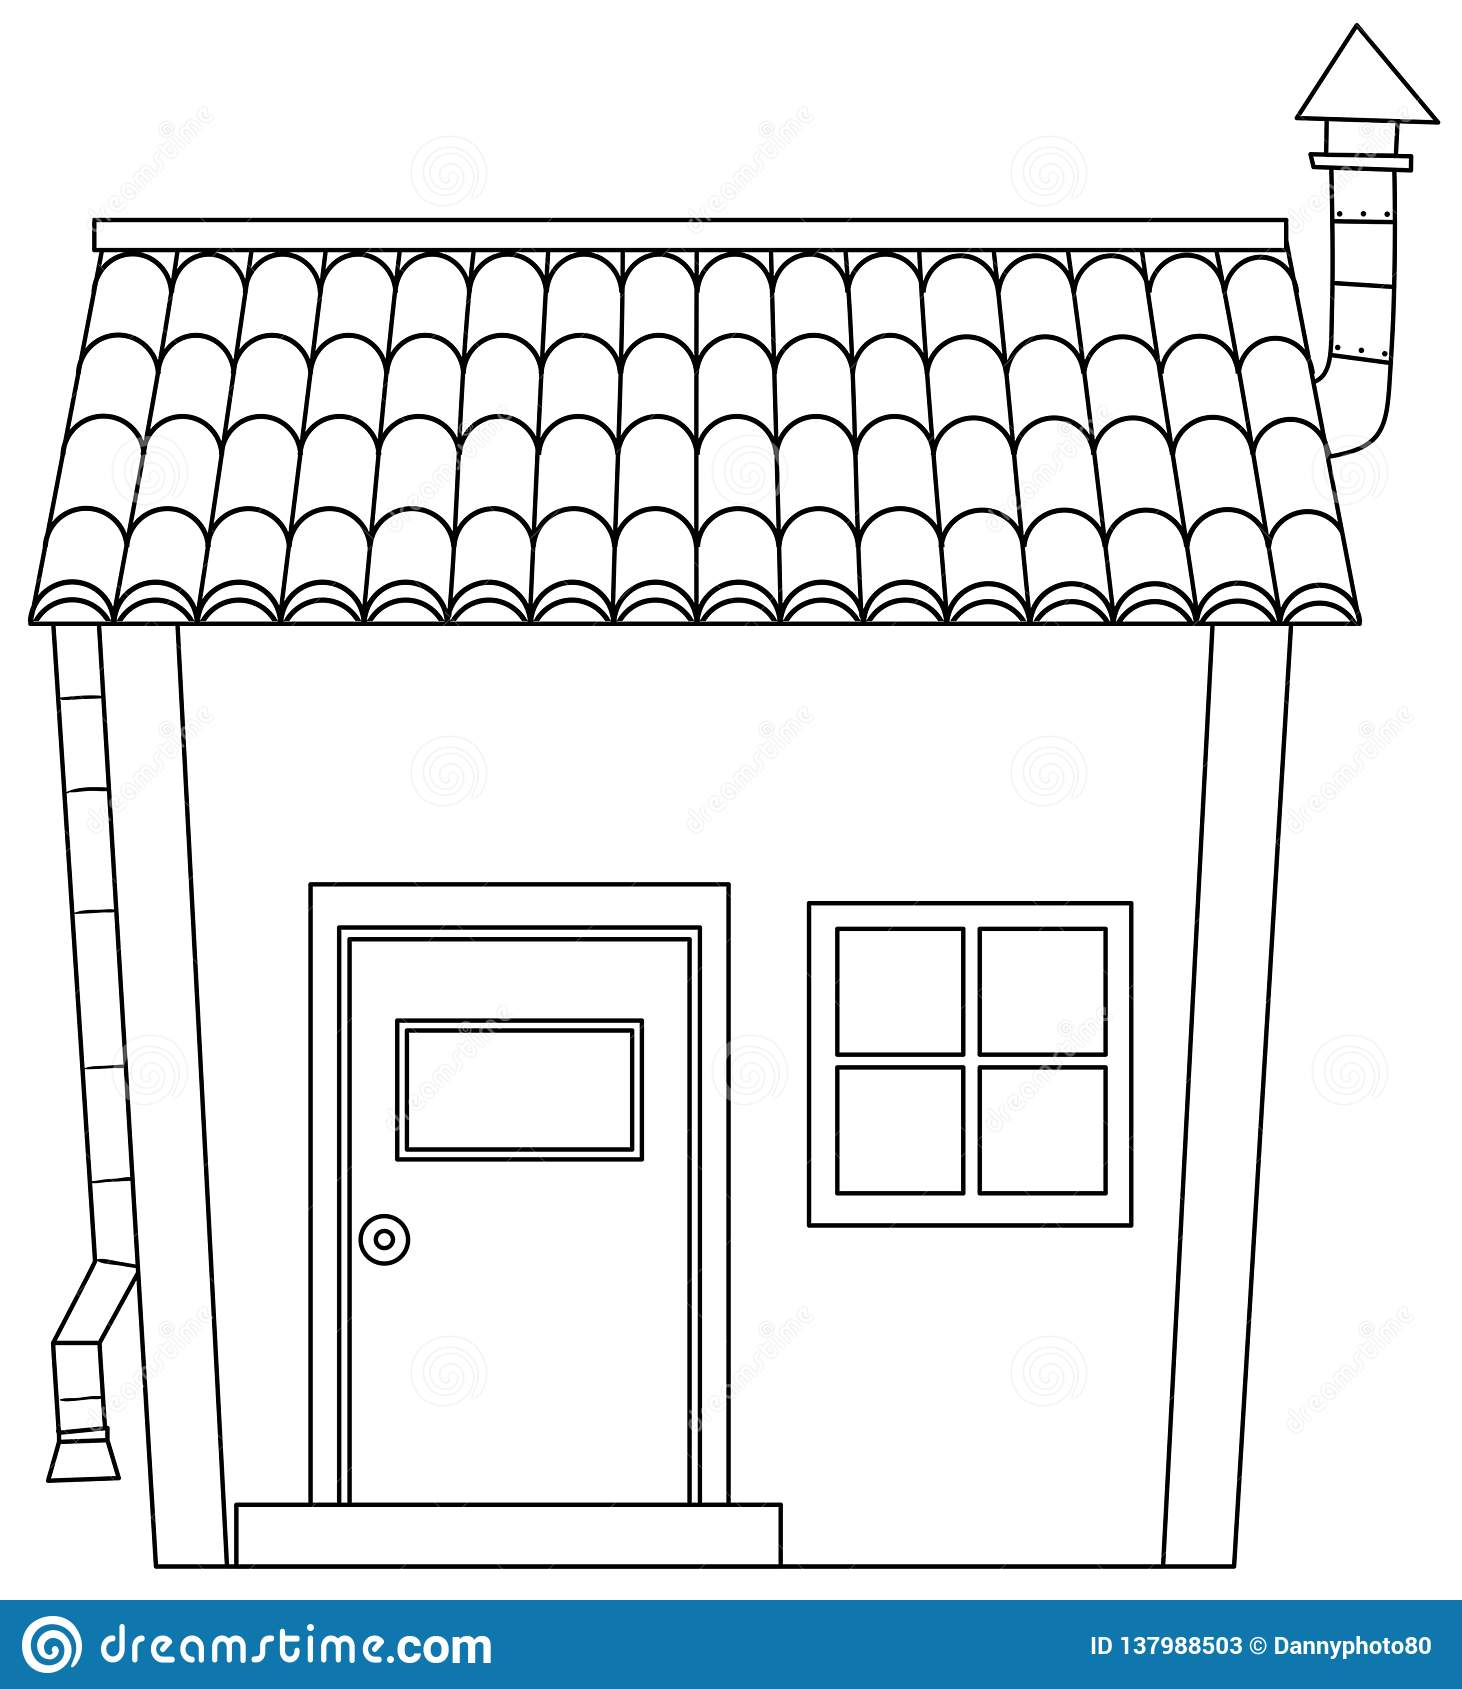 Simple Cartoon House Outline Stock Vector Illustration Of